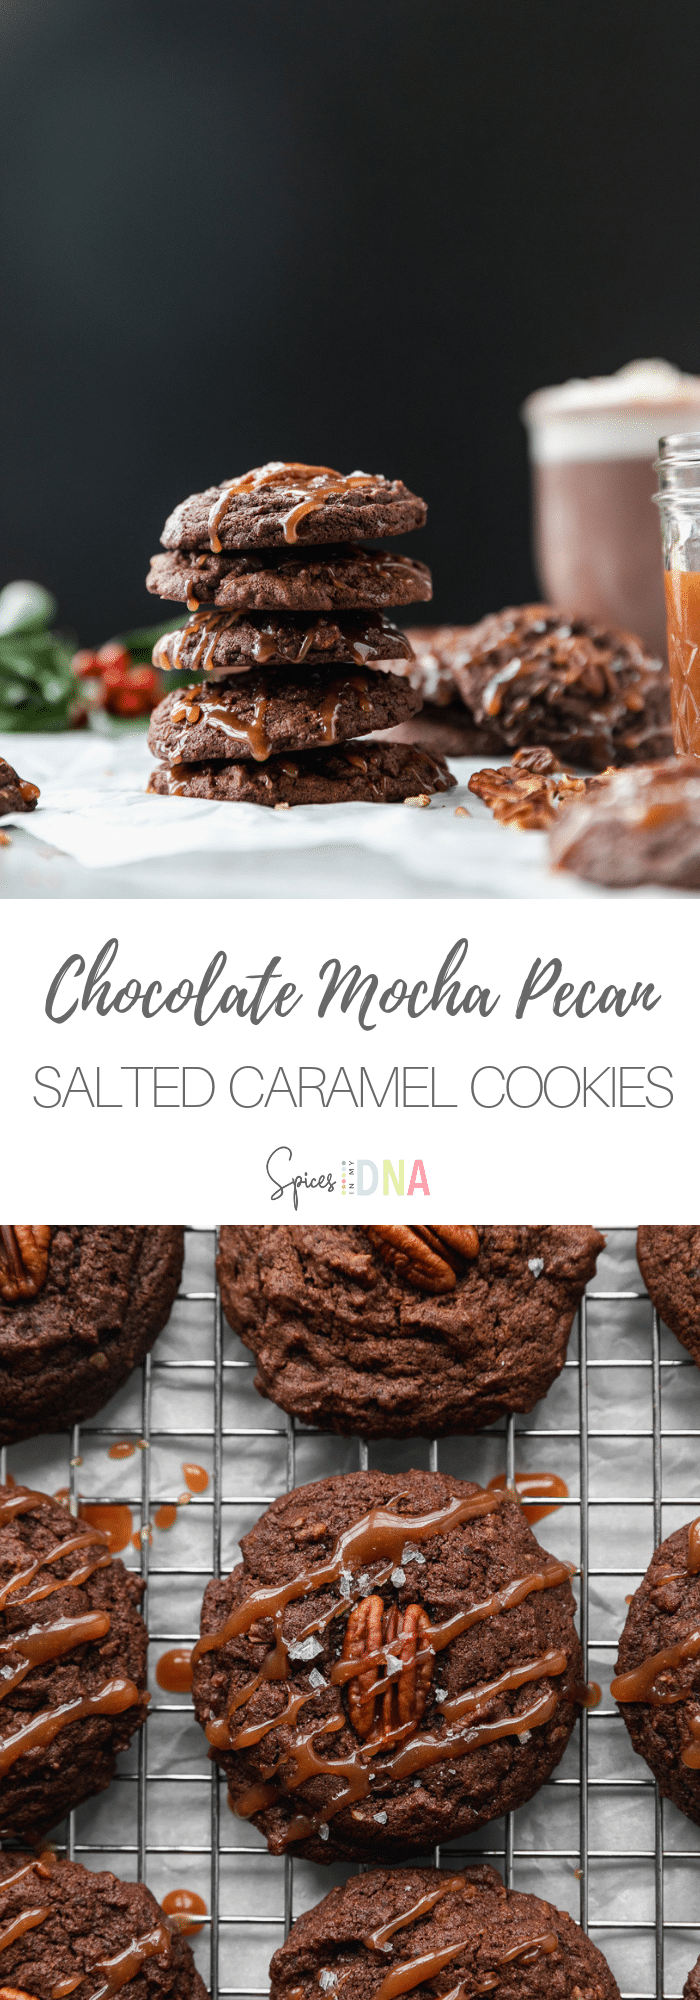 These Chocolate Mocha Pecan Salted Caramel Cookies are a chocolatey, sweet and salty cookie filled with rich chocolate flavor, chopped pecans, and espresso powder. They get drizzled with a simple homemade salted caramel sauce, and extra flaky sea salt for good measure! They're the perfect cookie to add to your baking list this holiday season! #cookie #holidaybaking #chocolatecookie #saltedcaramel #pecan #mocha